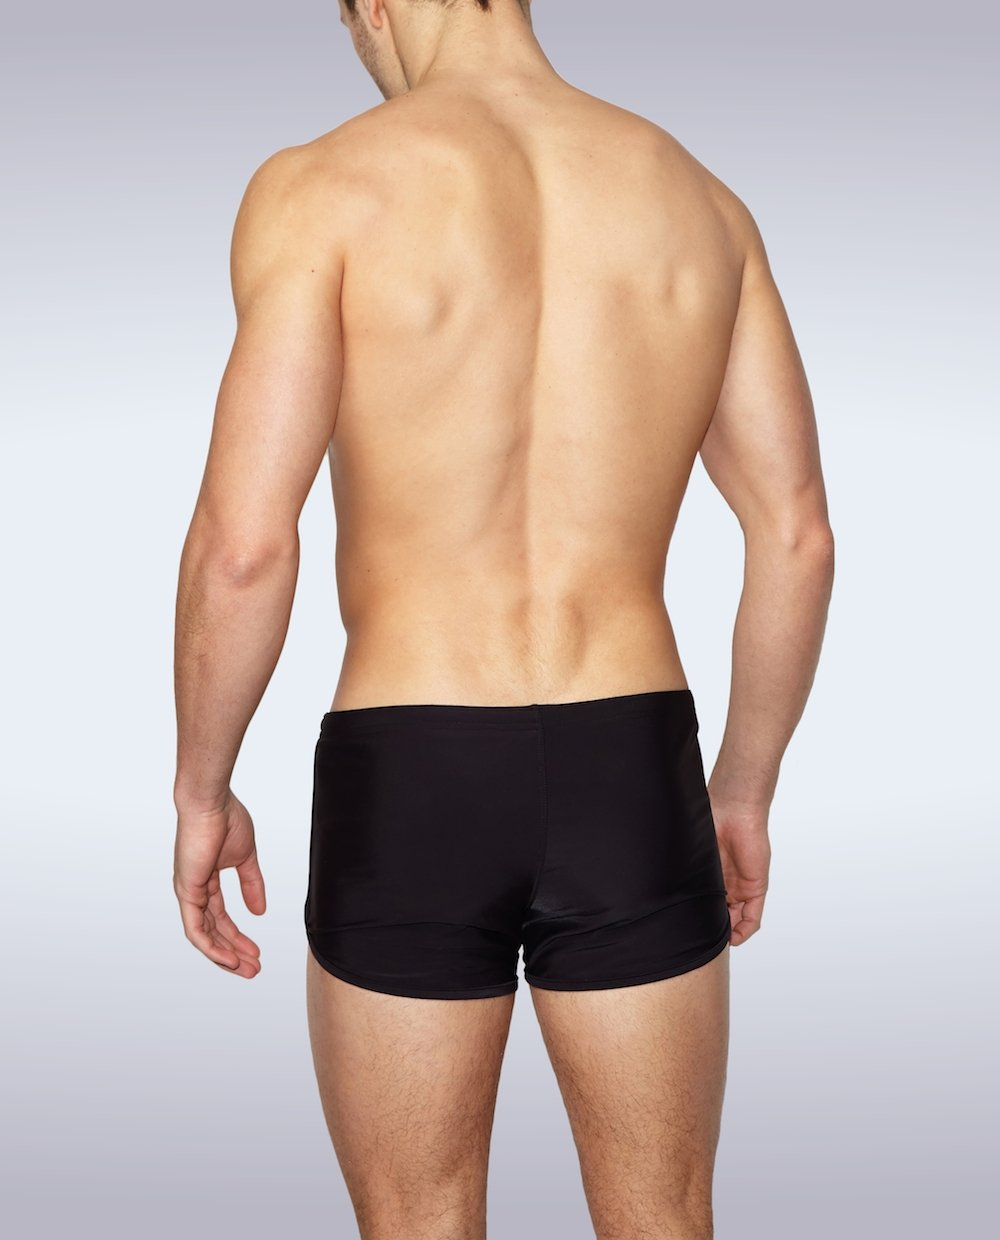 Umbria Swim Shorts - Garçon Underwear sexy men's underwear Swim Short Garçon Underwear